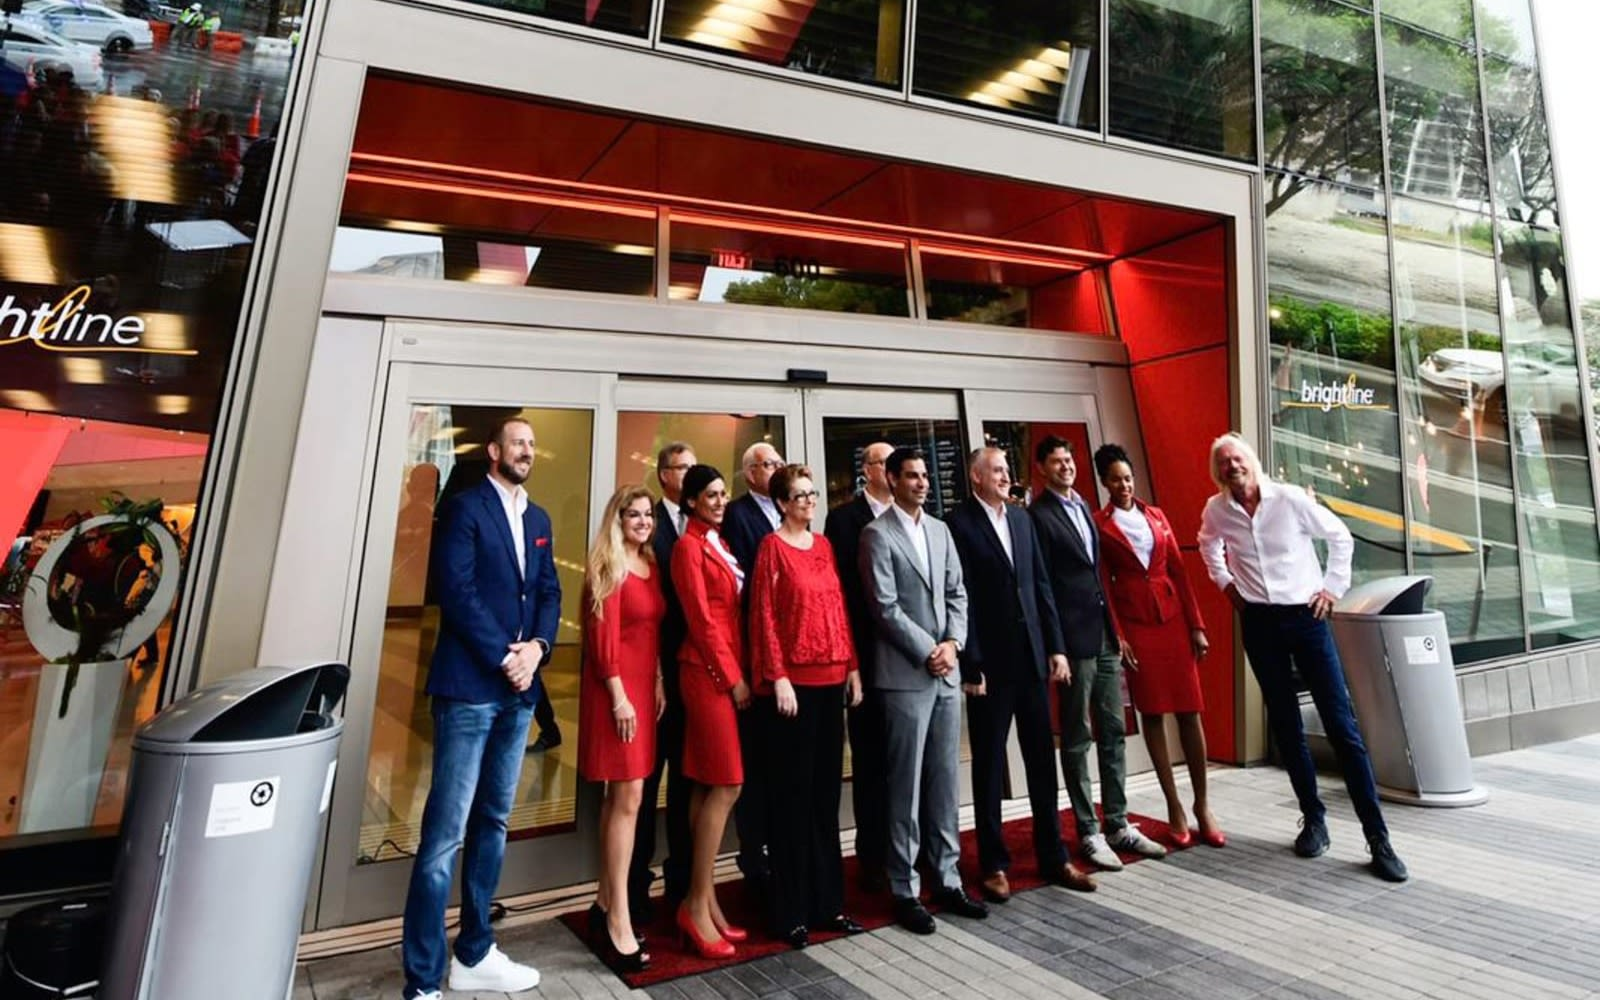 Richard Branson and the Virgin Trains USA team at Virgin MiamiCentral